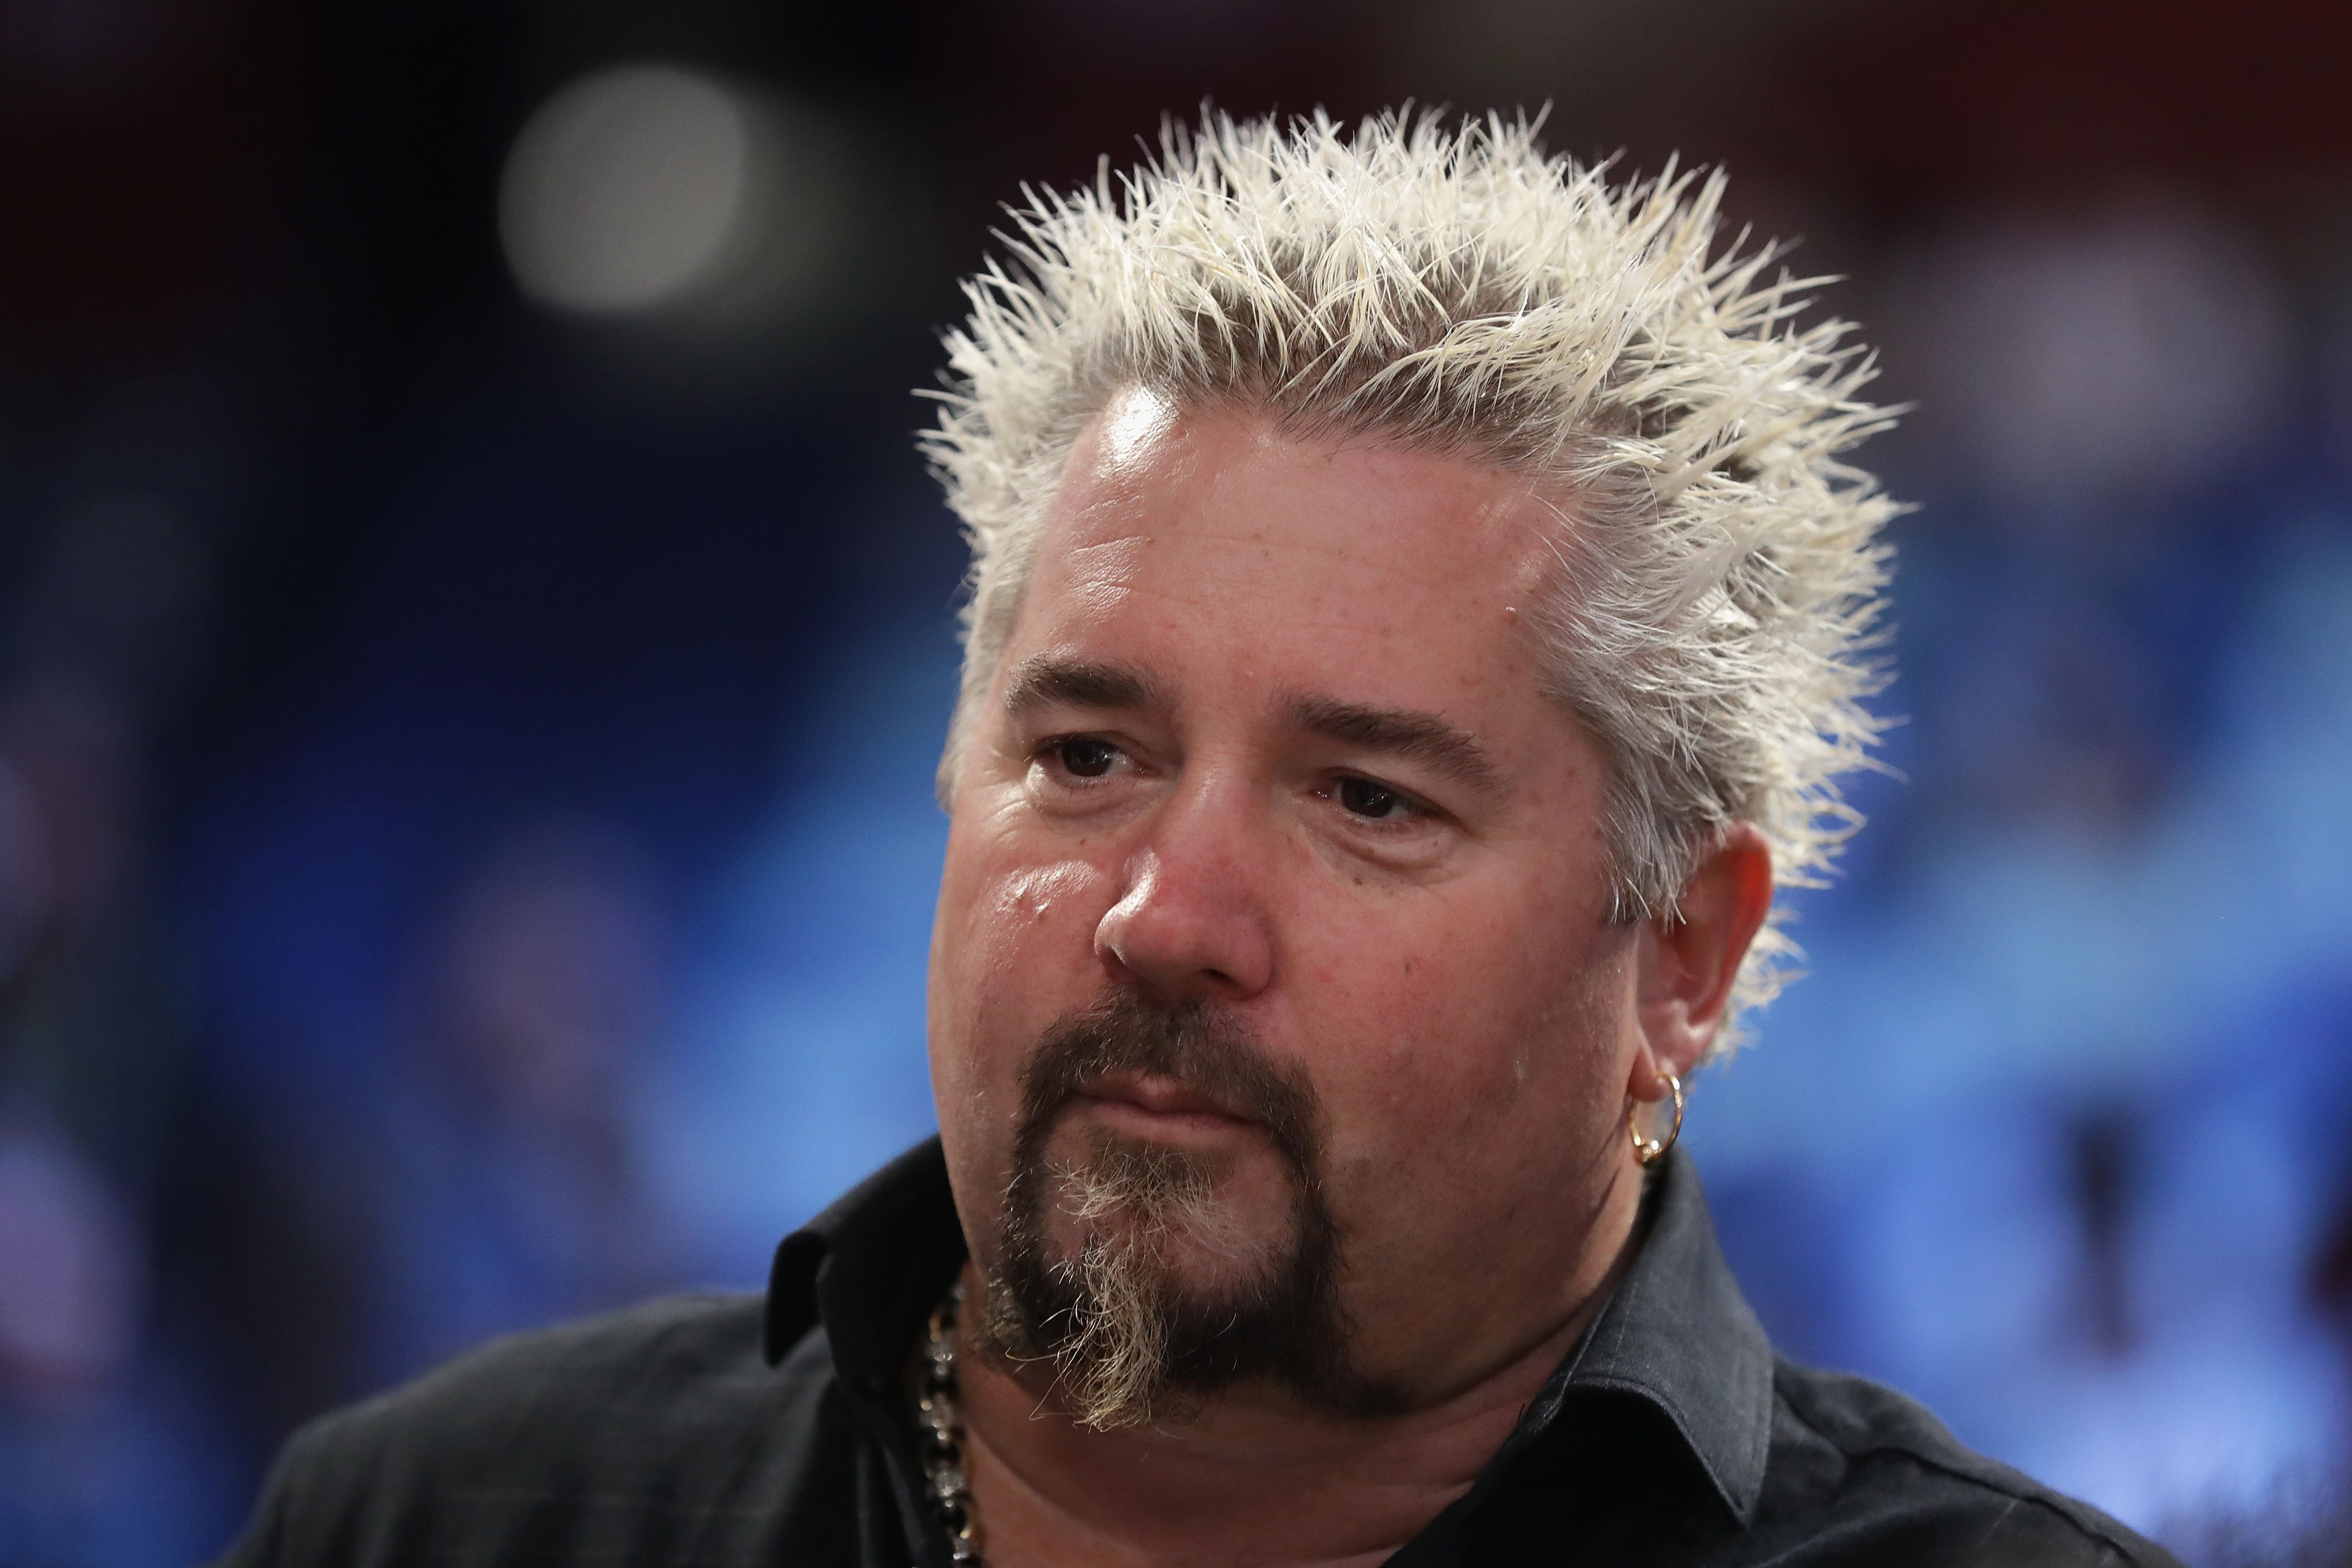 Guy Fieri attends the 2017 Taco Bell Skills Challenge at Smoothie King Center on February 18, 2017 in New Orleans, Louisiana. | Photo: Getty Images